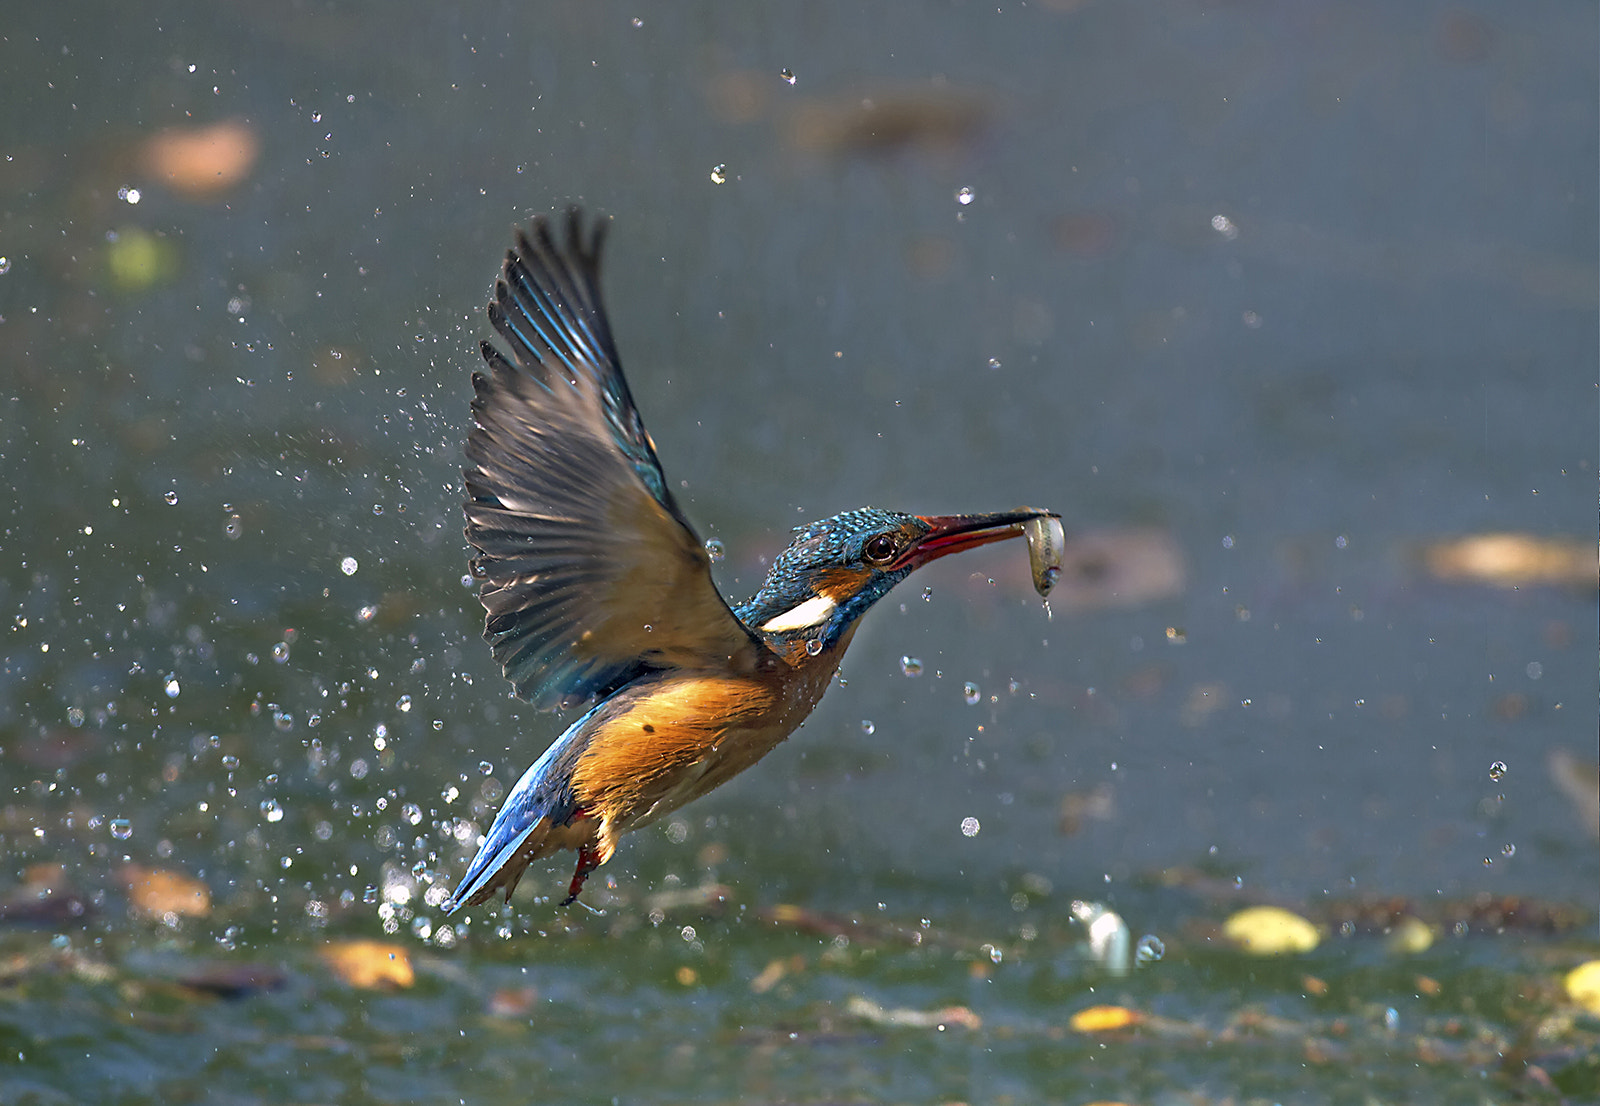 Photograph Lunch flying by Marco Redaelli on 500px